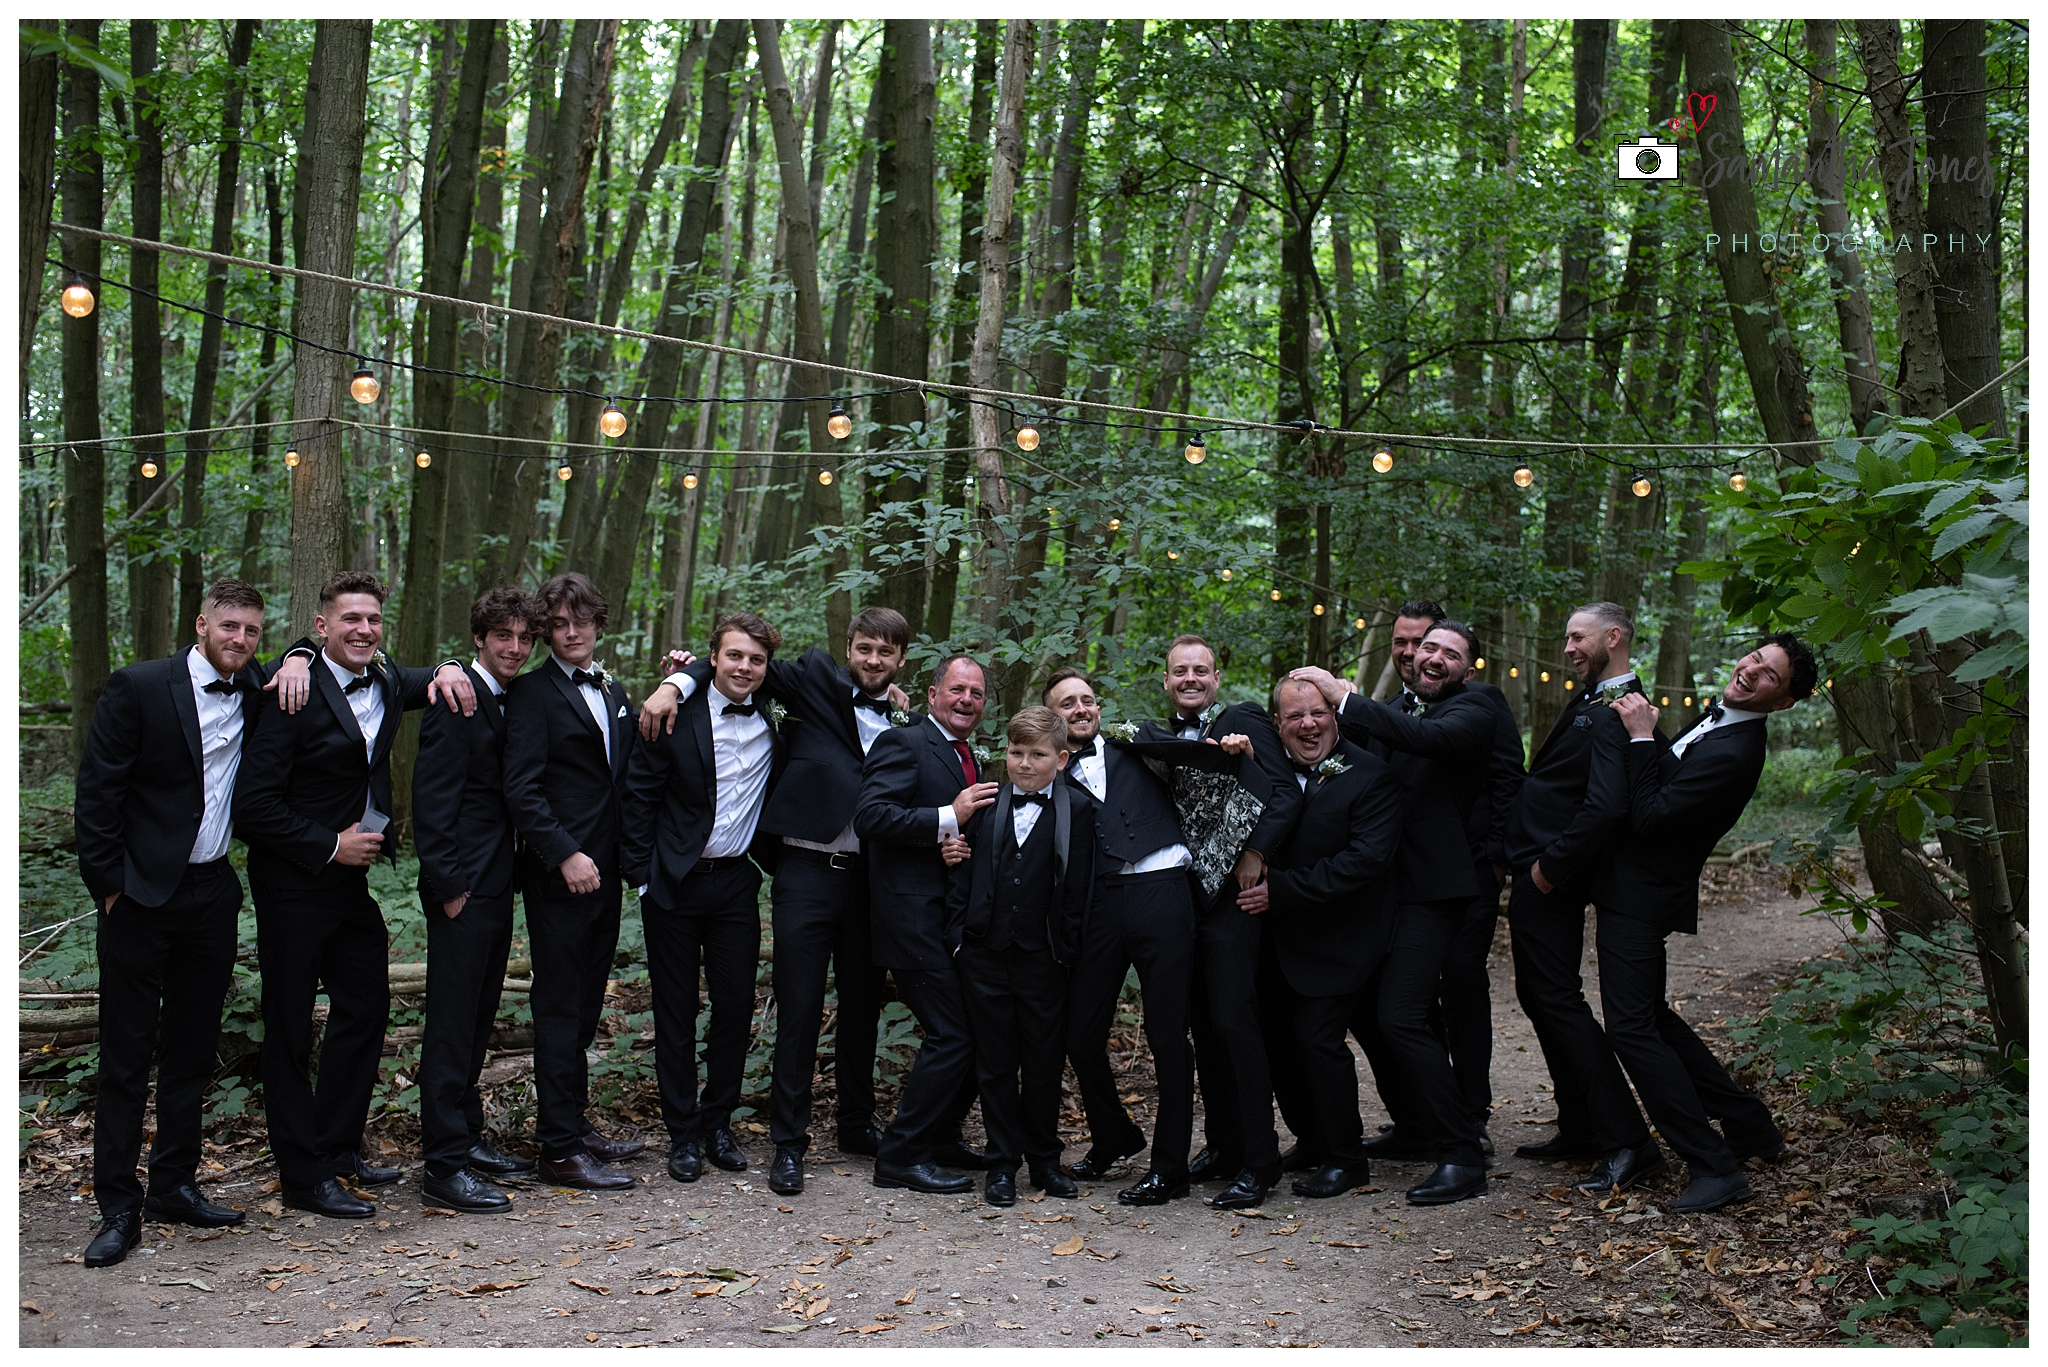 Emily and Jack festival wedding at The Dreys